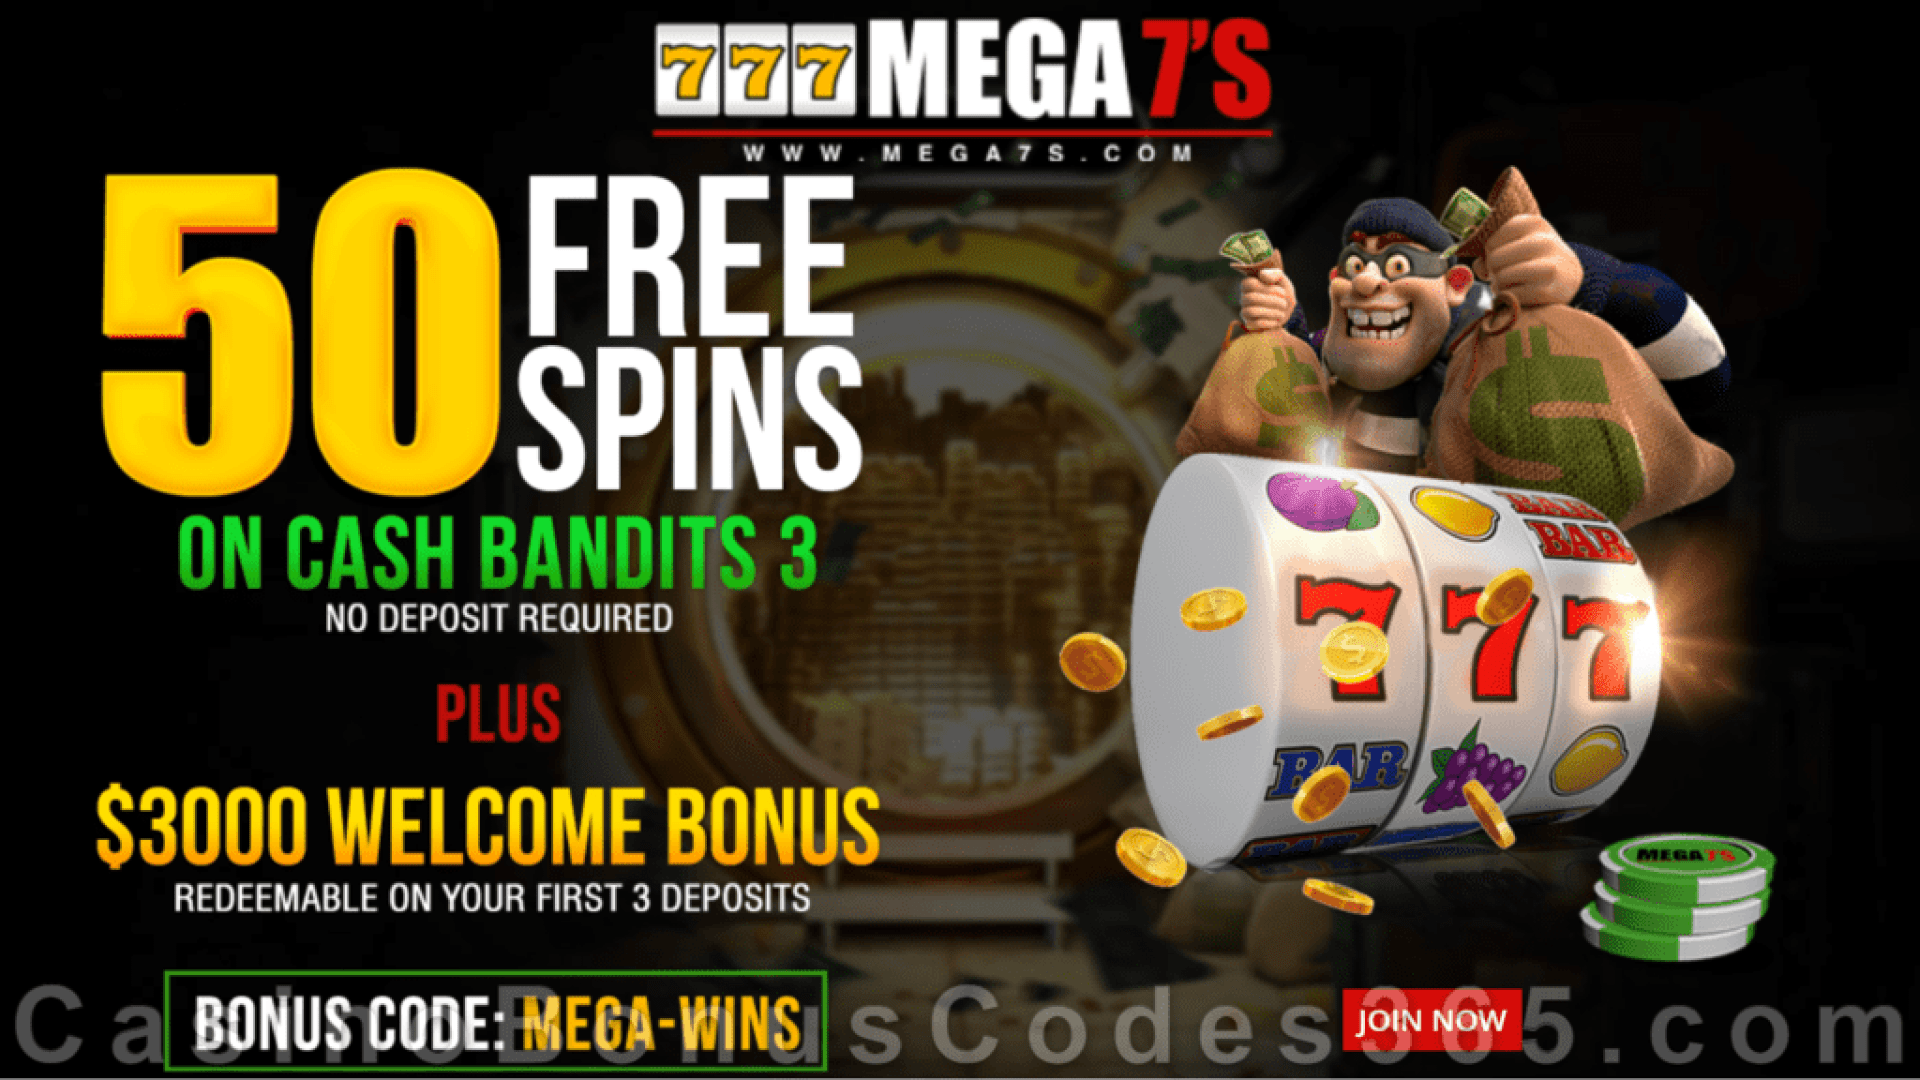 Mega7s Casino 50 FREE RTG Cash Bandits 3 Spins New Players No Deposit Deal